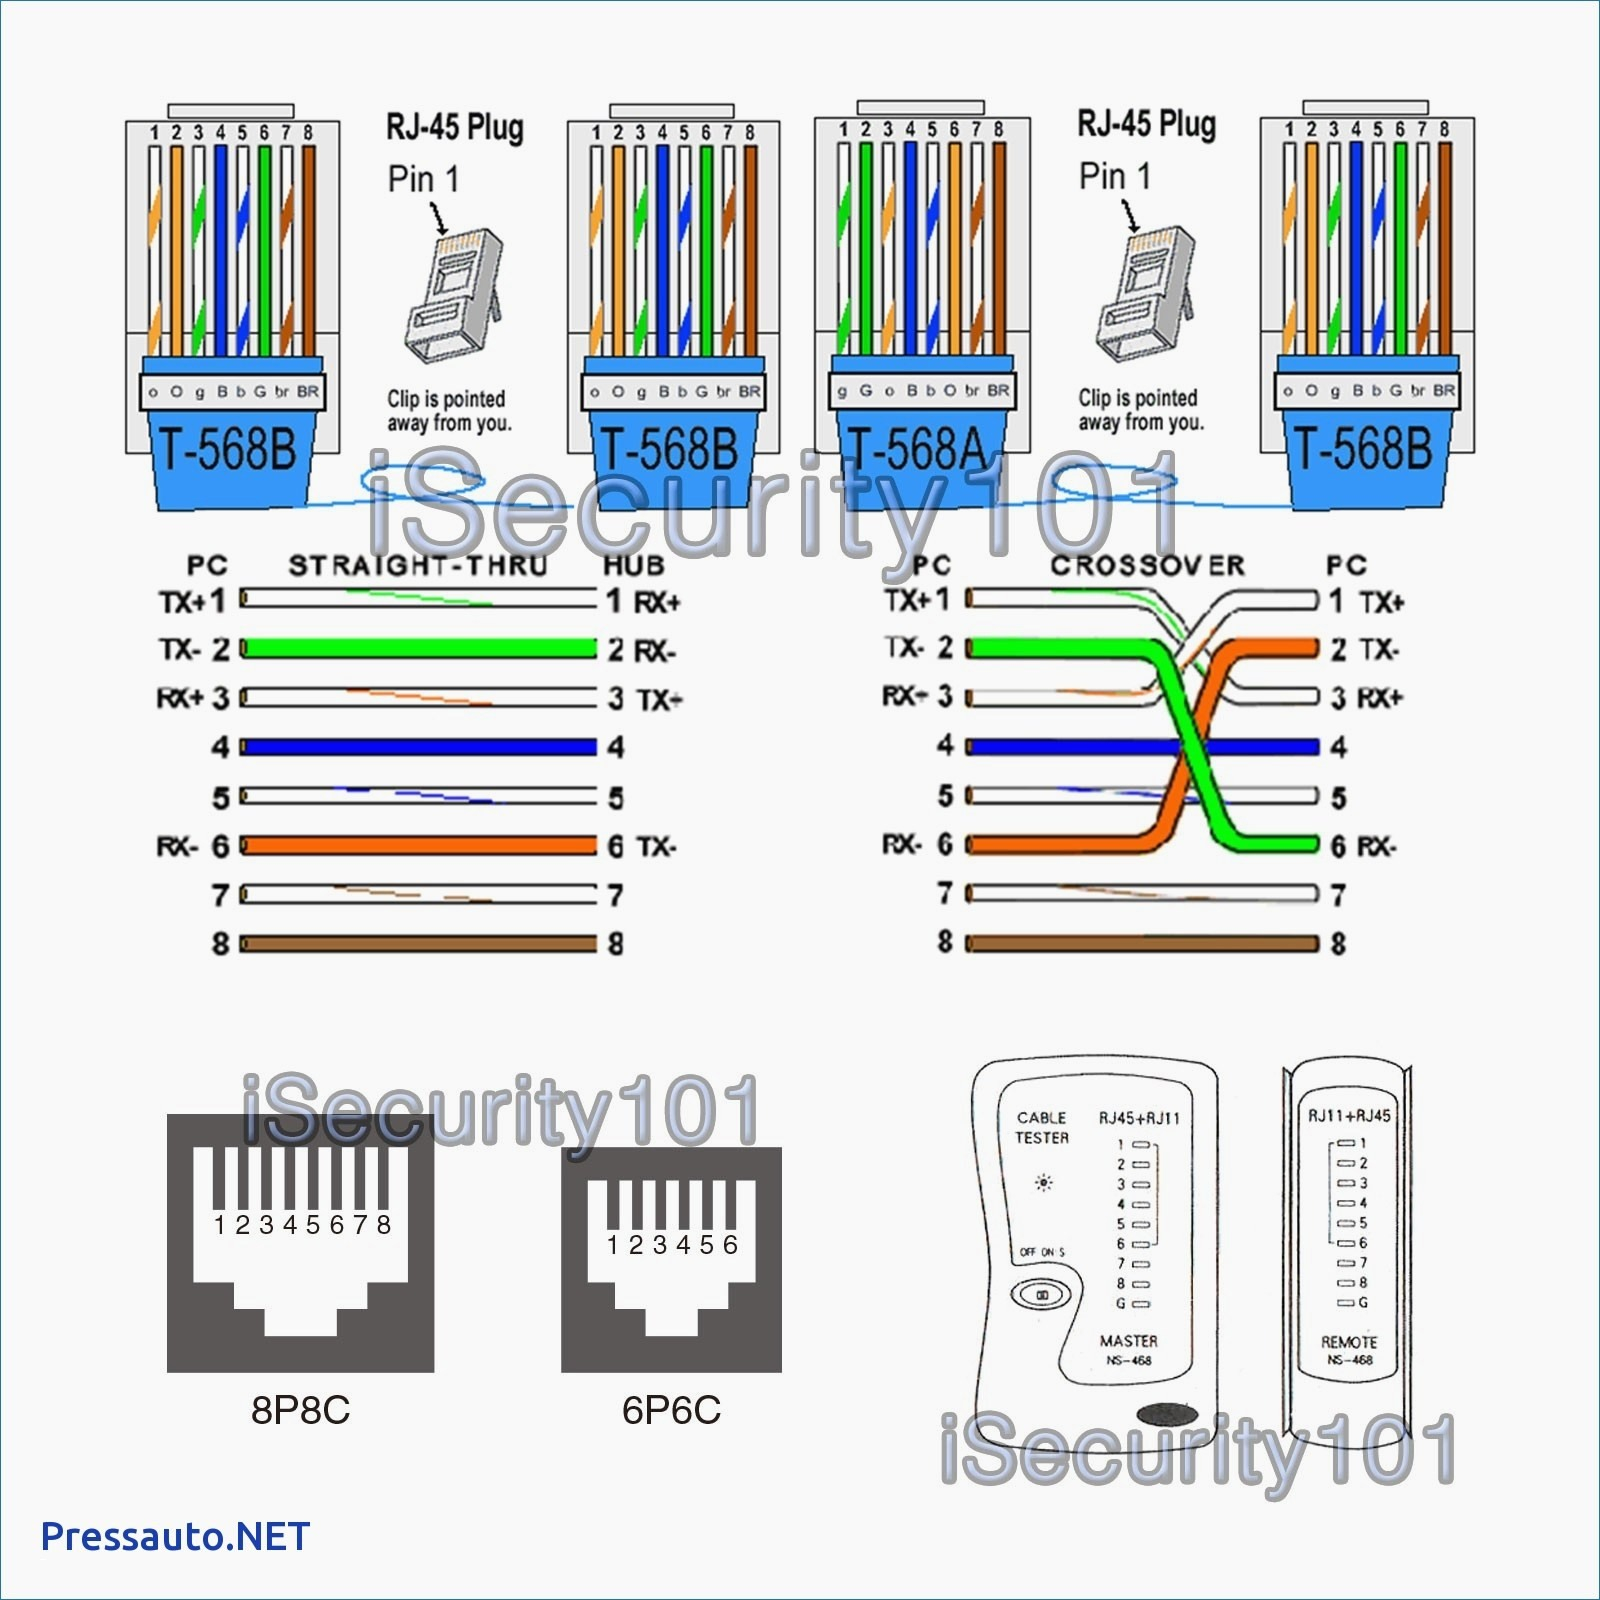 t568b wiring diagram Collection-T568b Wiring Diagram New Inspirational T568b Wiring Diagram Diagram 5-b